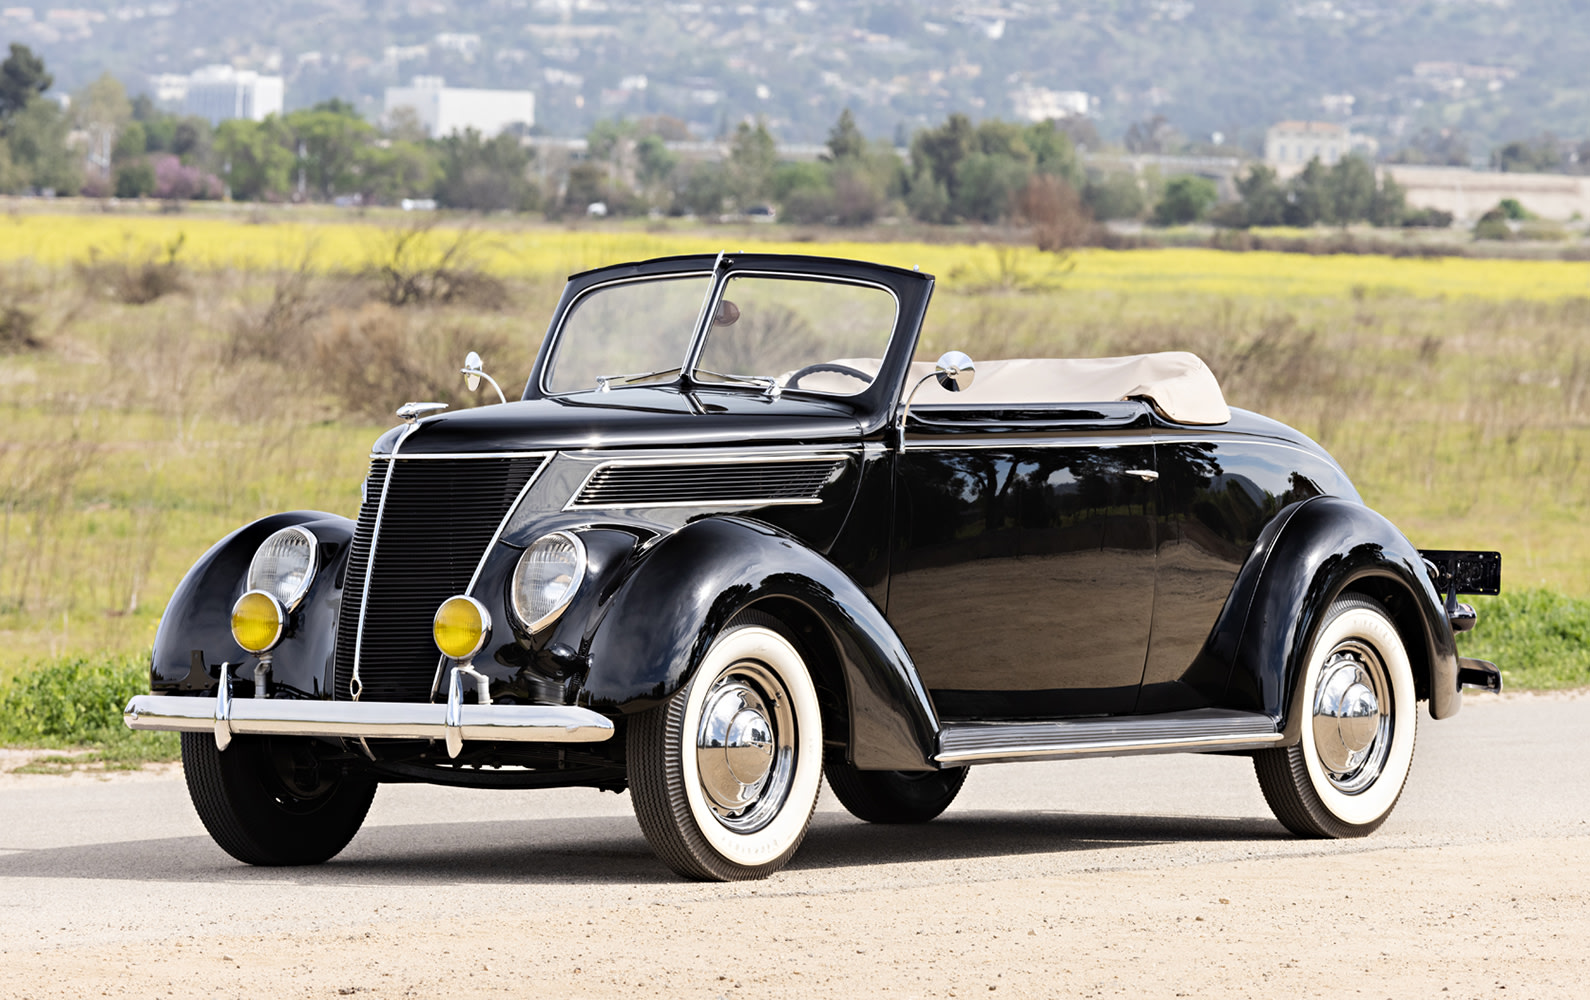 Prod/O21F - May 2021/1518_1937 Ford DeLuxe Cabriolet/1937_Ford_DeLuxe_Cabriolet_14_q8gjwa